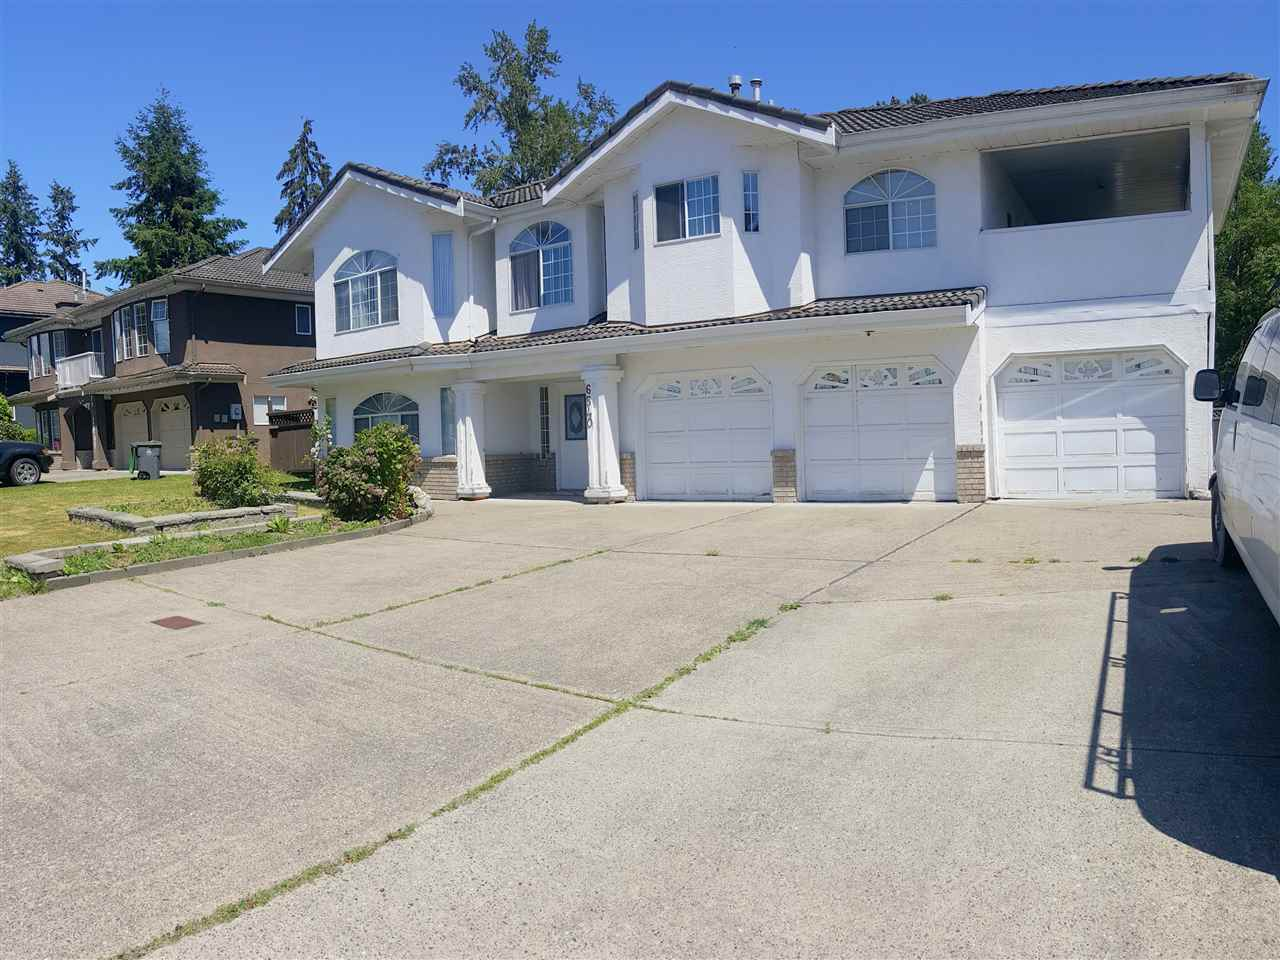 Main Photo: 6540 122A Street in Surrey: West Newton House for sale : MLS®# R2172178